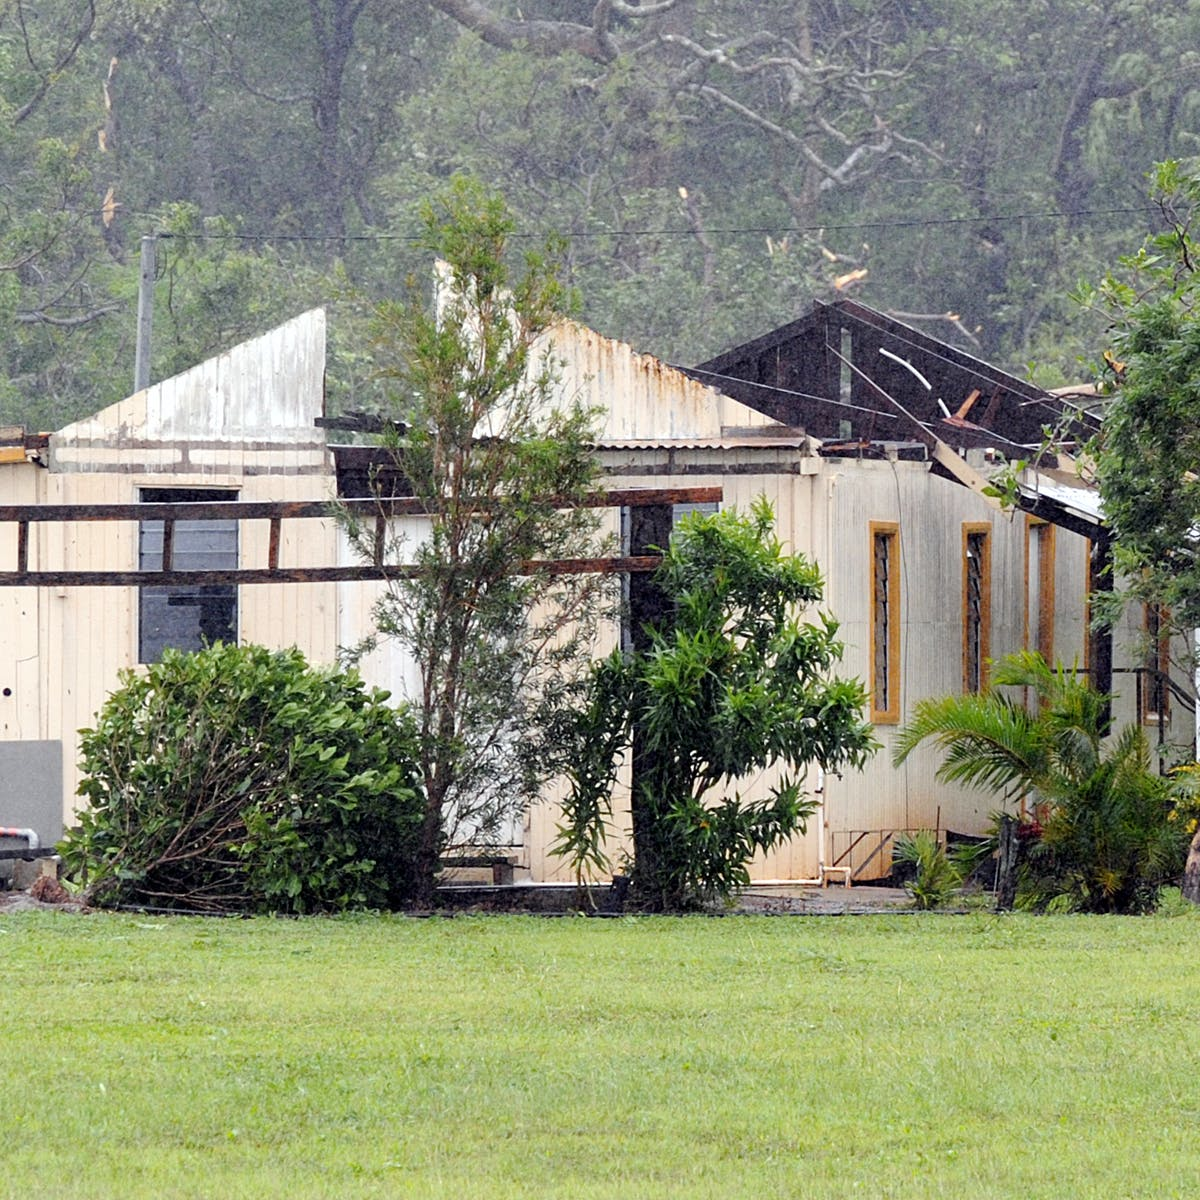 How building codes save homes from cyclones, and how they don't